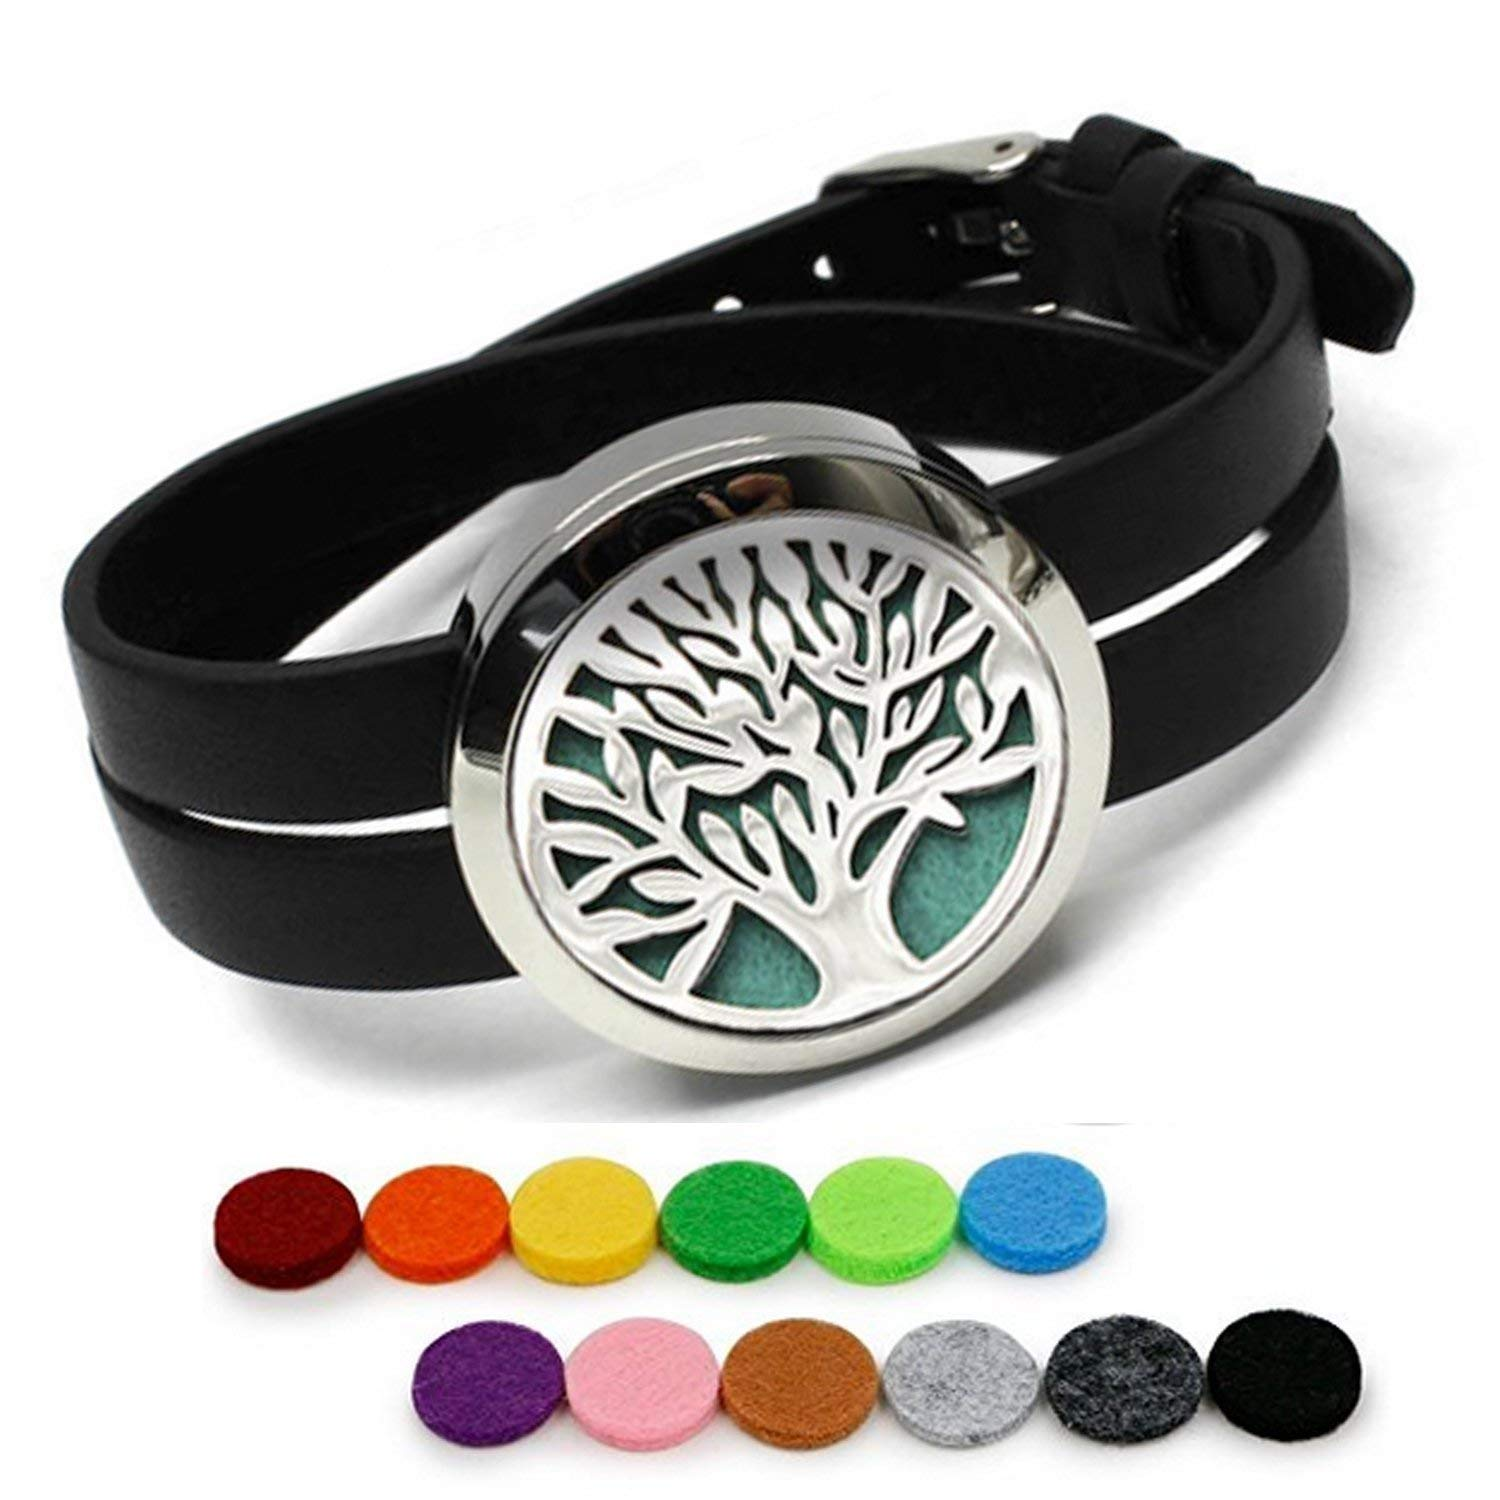 Aphaca Tree of Life Design Aromatherapy Essential Oils Diffuser Leather Band Bracelet,316L Stainless Steel Locket Batman Superman Necklace Pendan with 10 Color Pads for Girls, Wemen JY-2